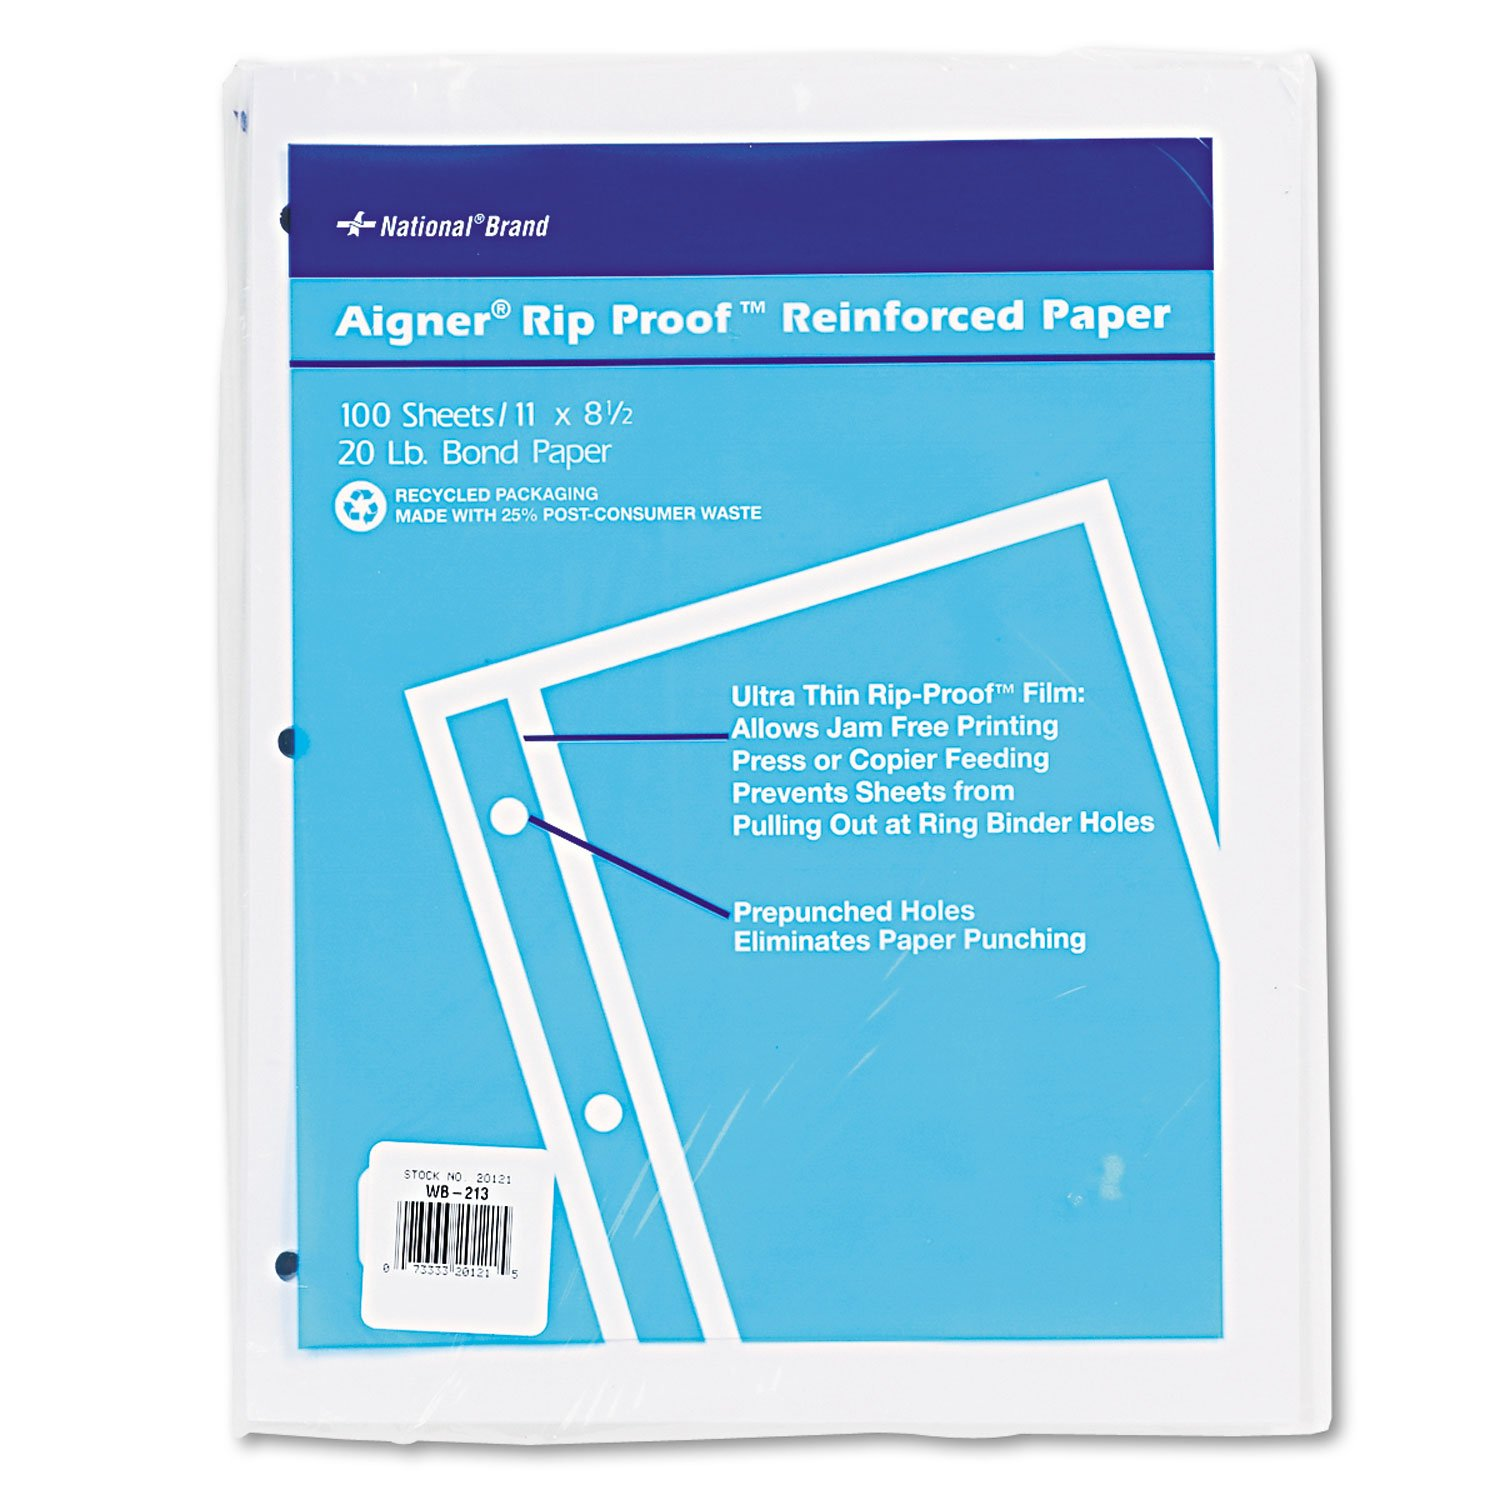 Rediform - Reinforced Filler Paper, Plain Rule,11x8-1/2, White, Sold as 1 Package, RED20121 11x8-1/2 Dominion Blueline Inc 7715824